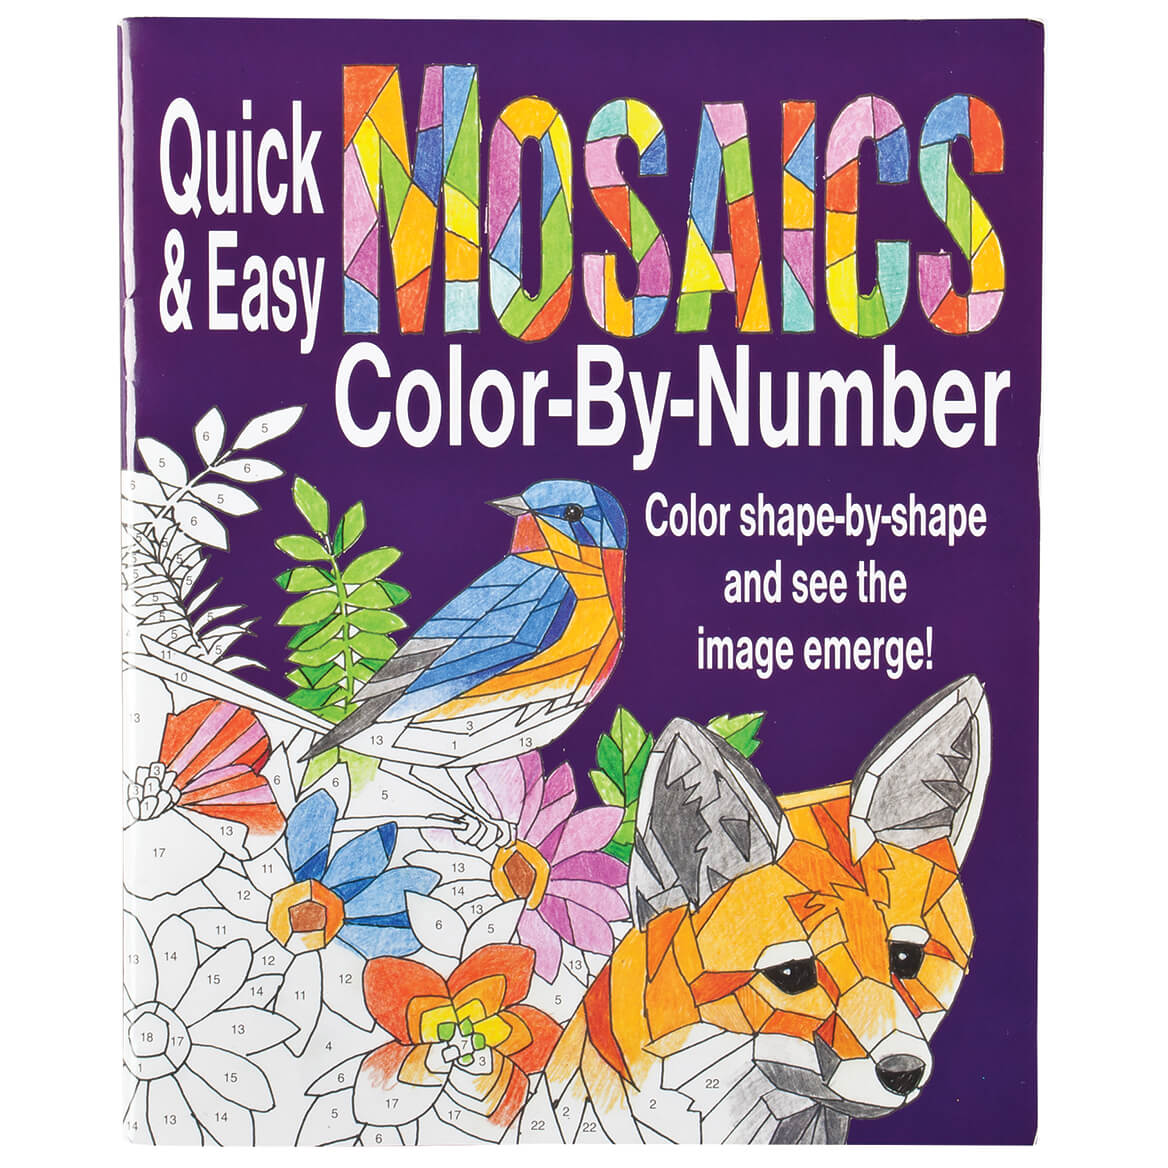 Quick and Easy Mosaics Color-By-Number Book-361848